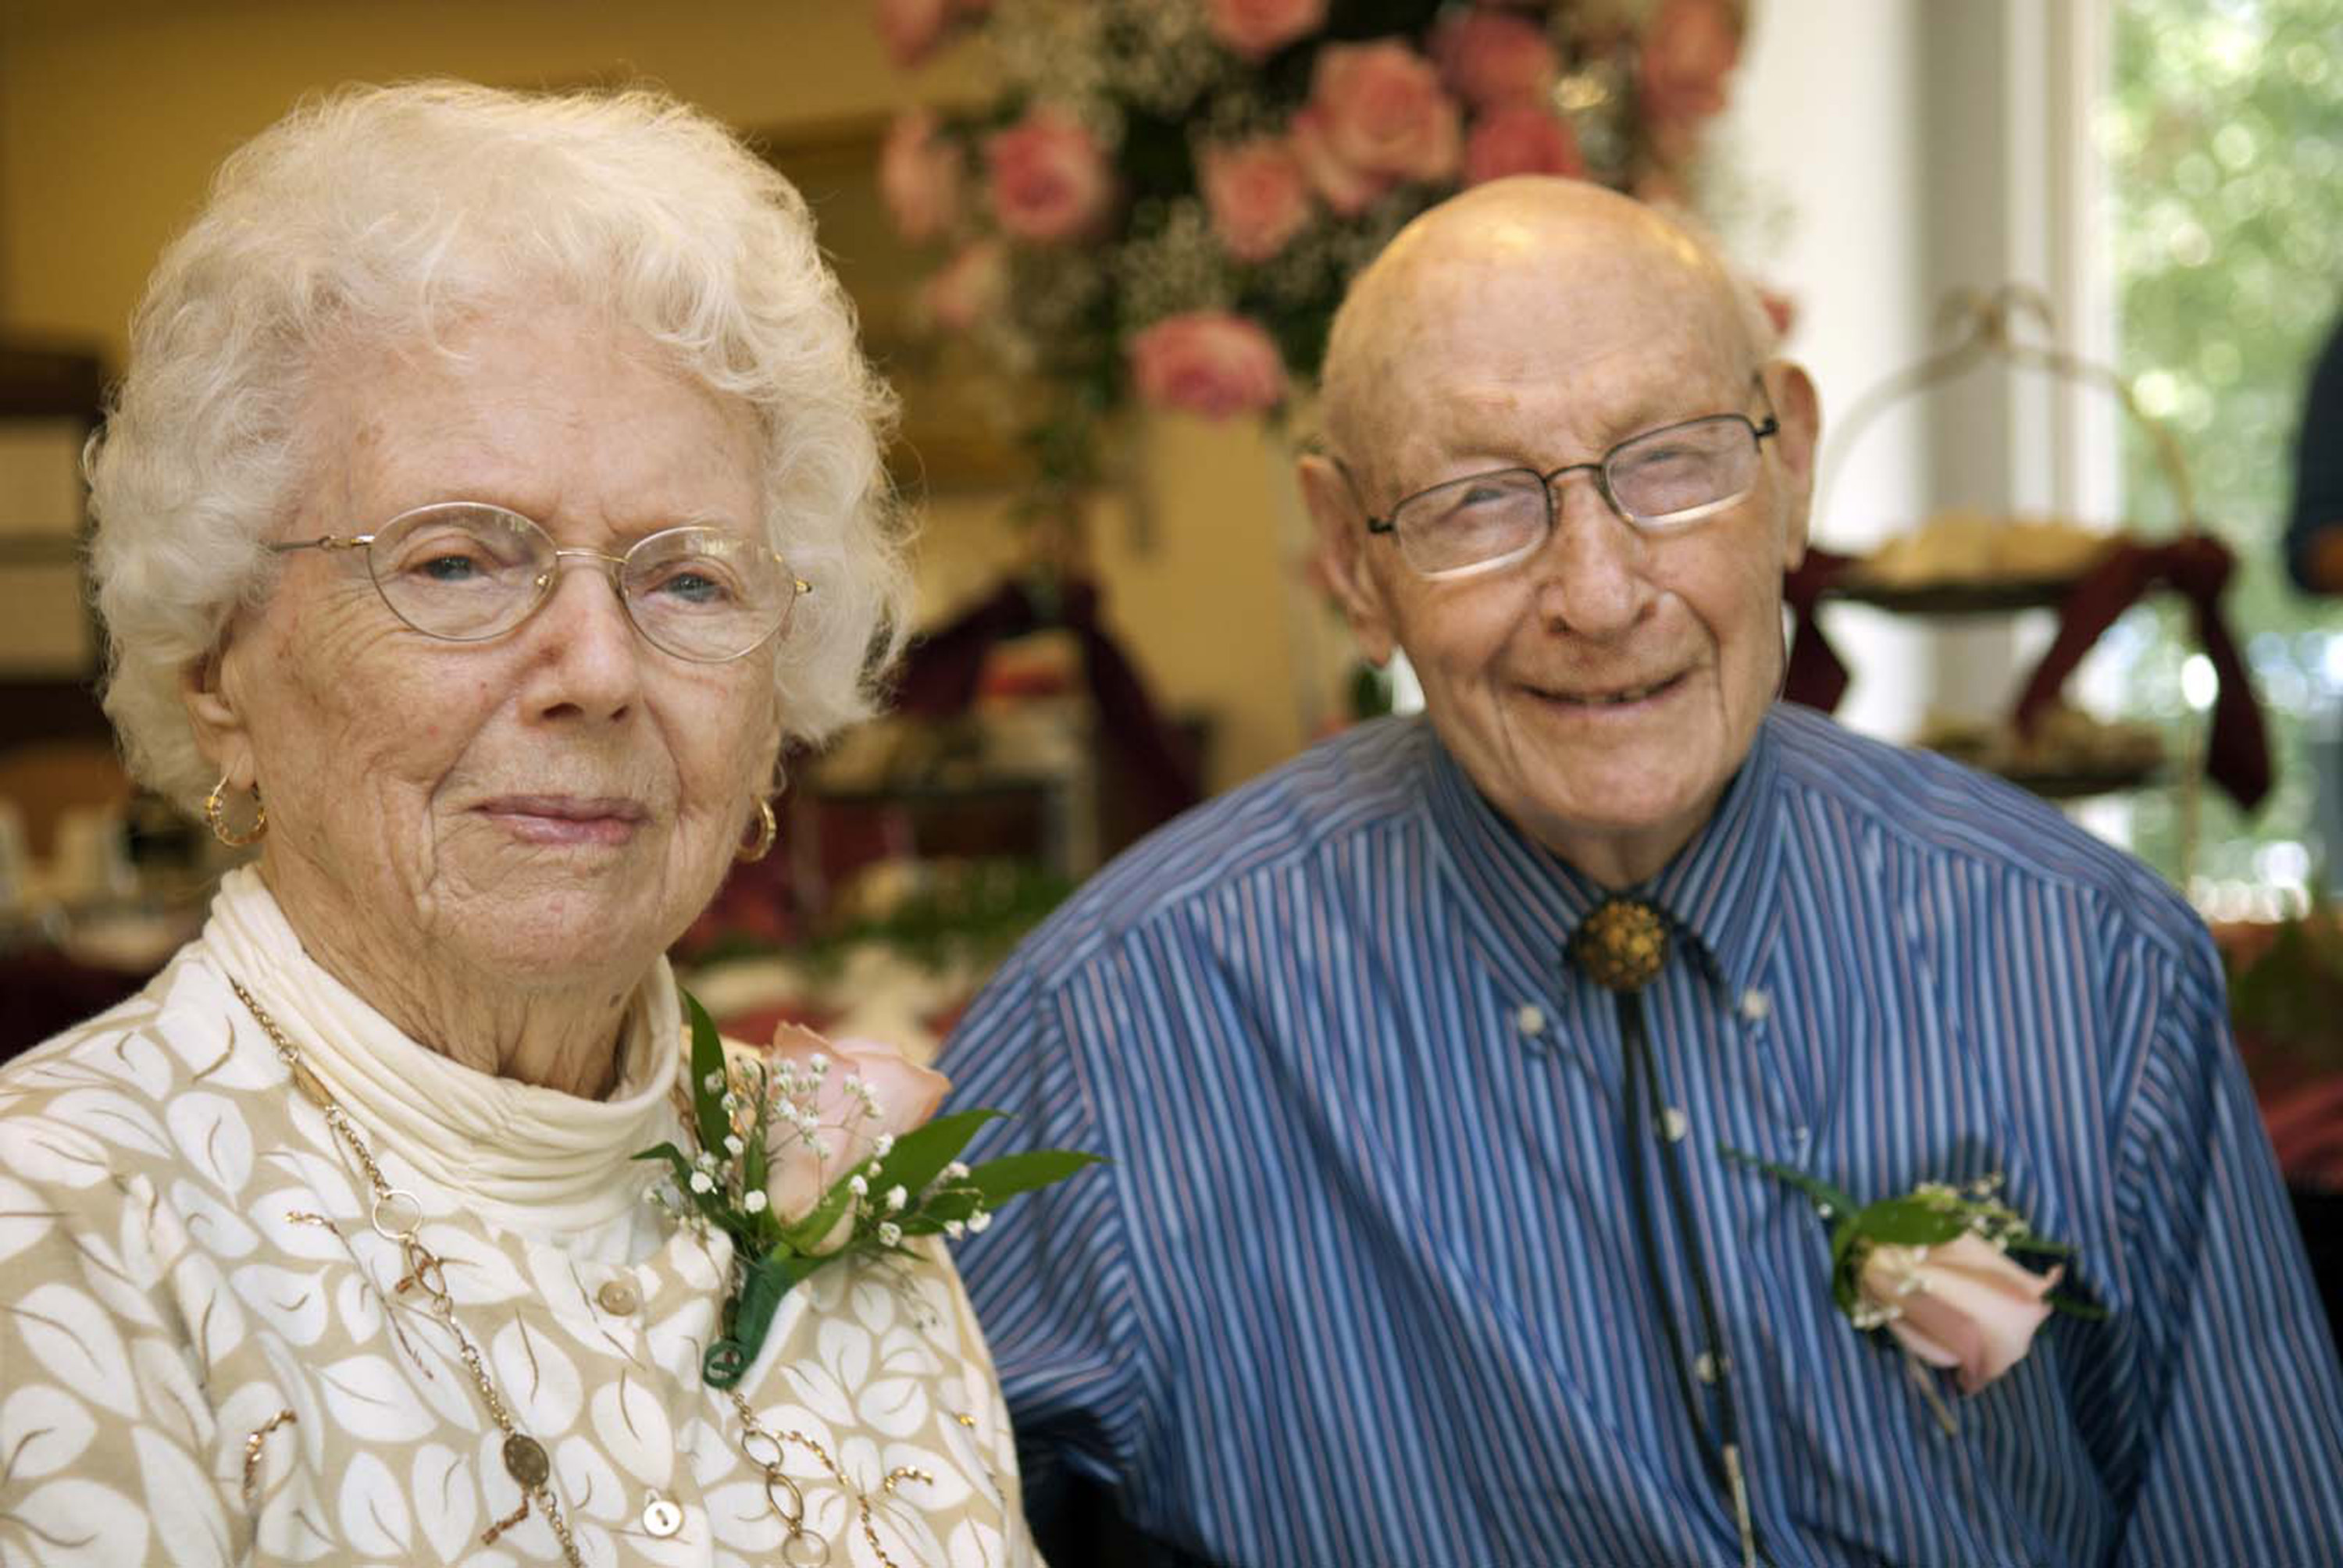 1,000 years of living: 10 Centenarians share secrets to a long life